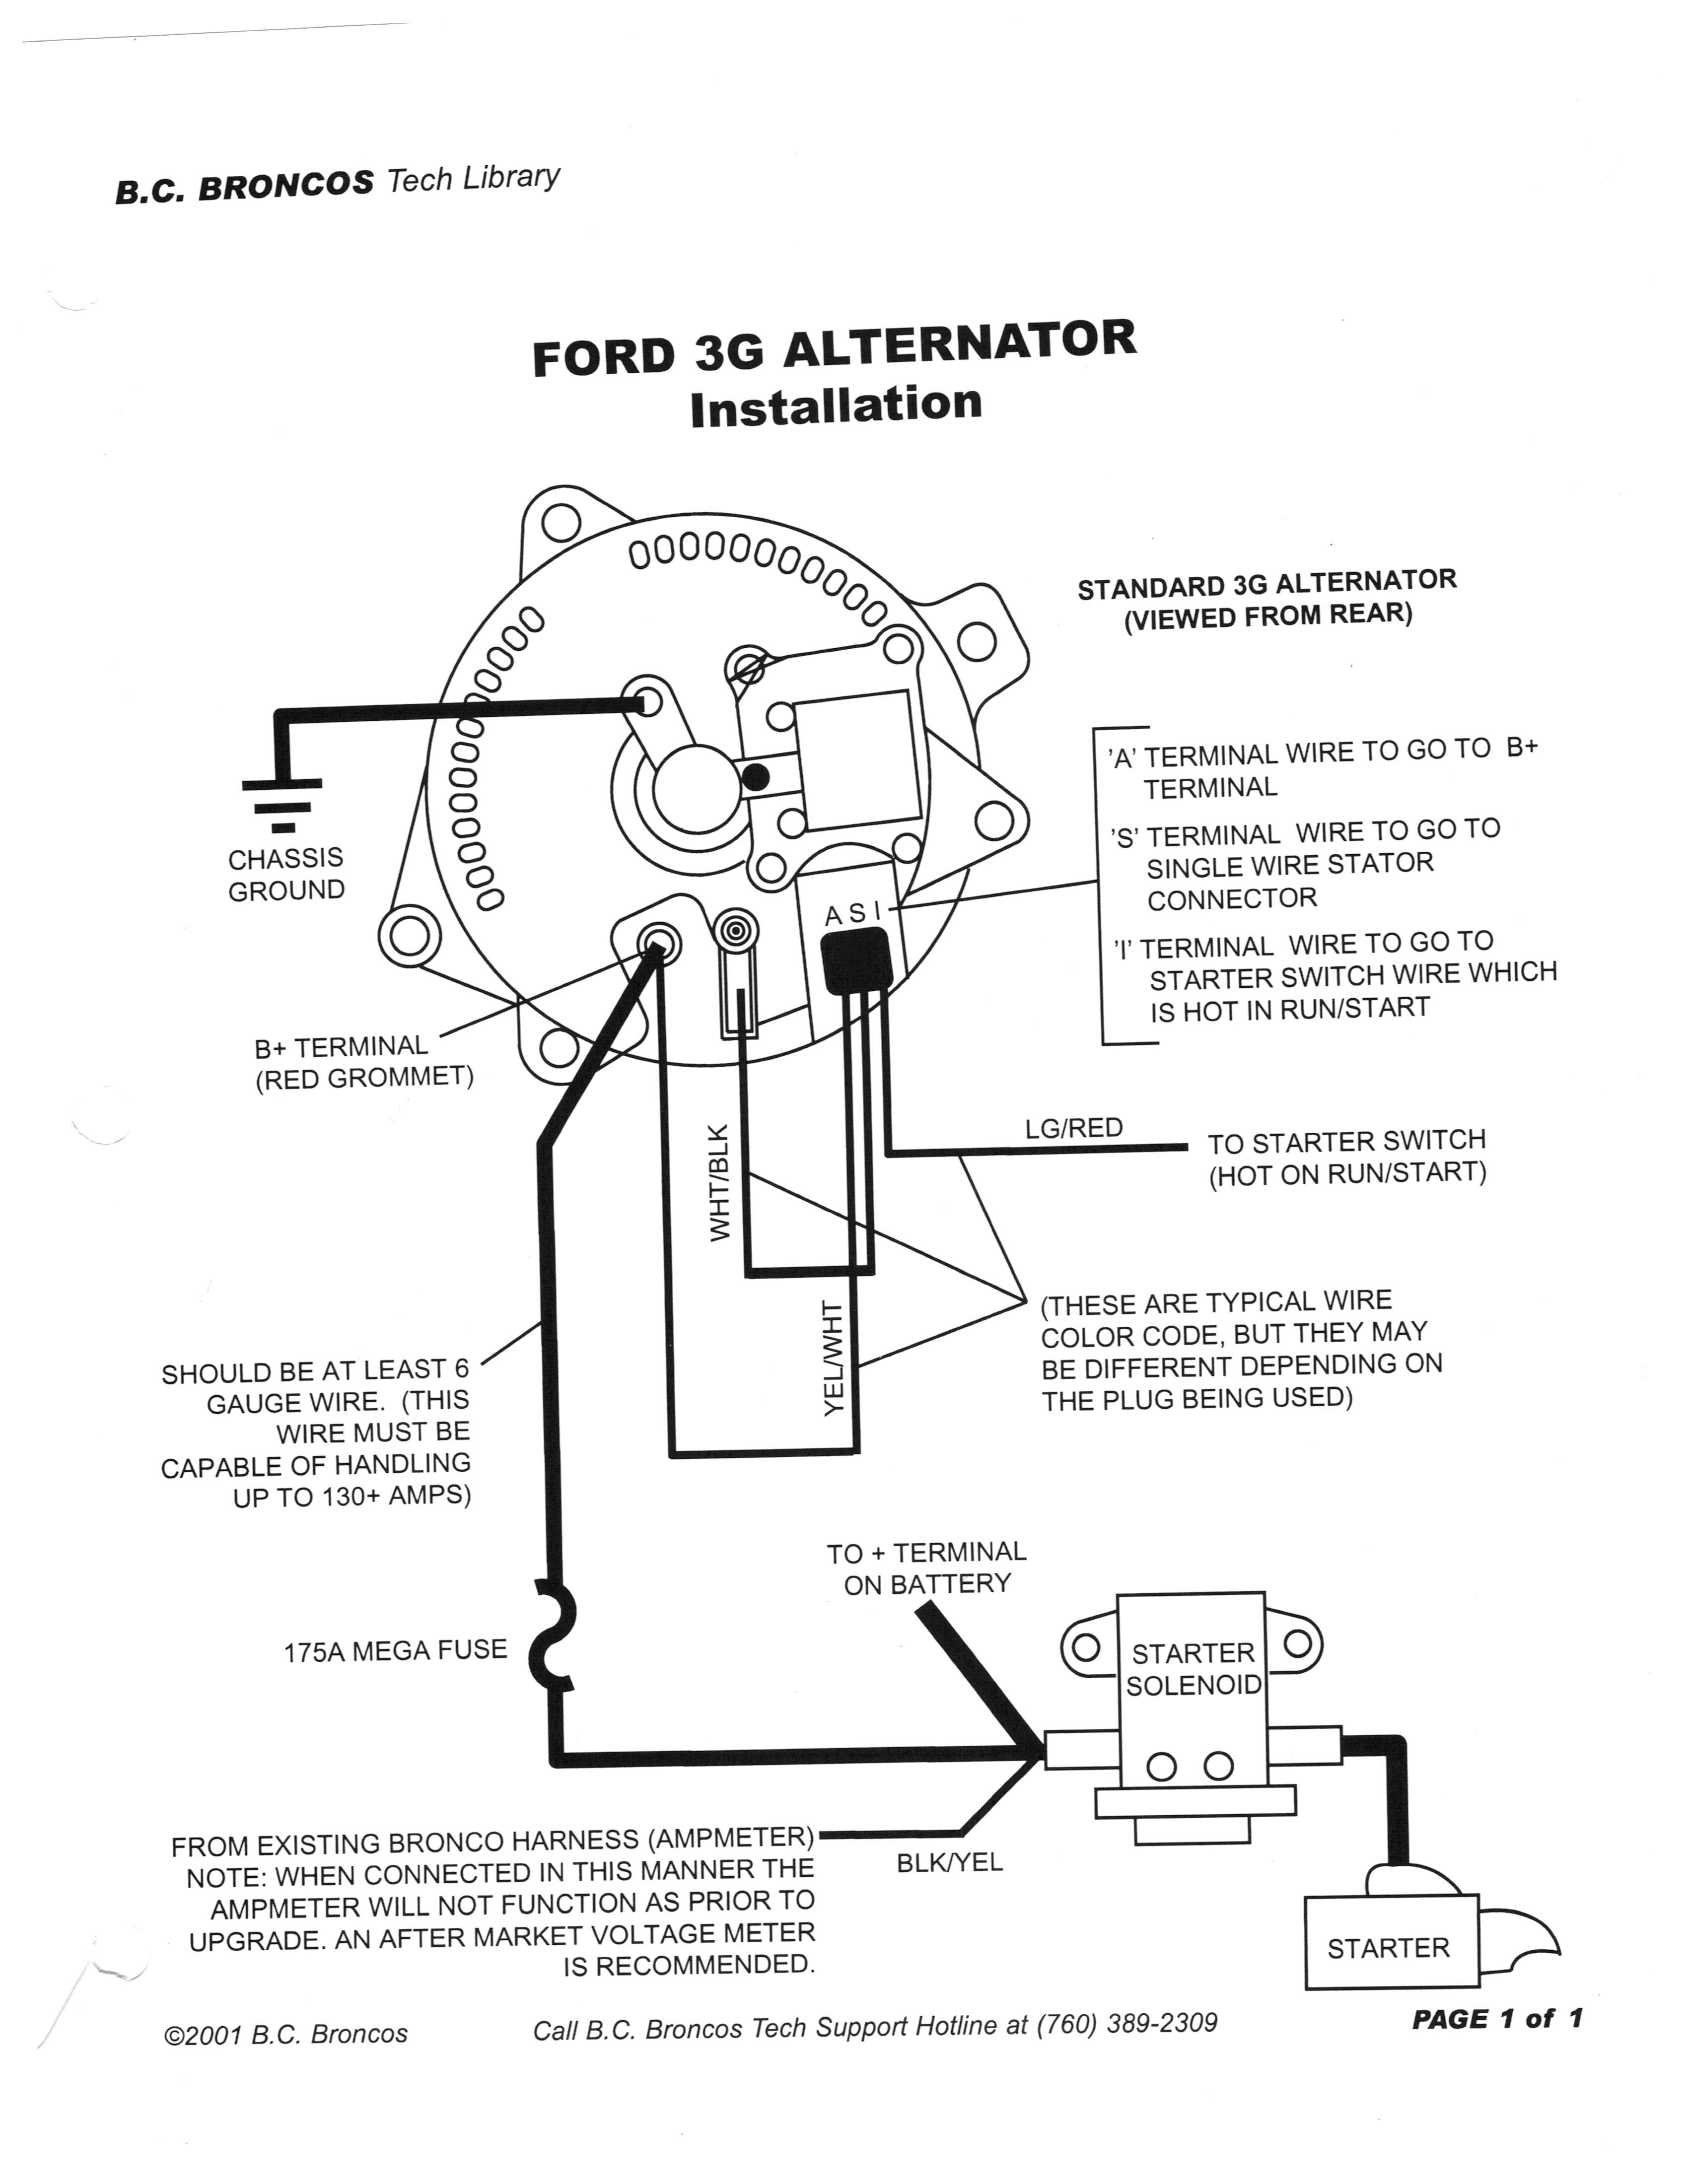 Ford F700 Alternator Wiring | Wiring Diagram  Ford Mustang Alternator Wiring Diagram on ford one wire alternator diagram, ford alternator wiring harness, ford truck alternator diagram, ford alternator parts diagram, ford external voltage regulator diagram, 1968 mustang turn signal diagram, mustang wiring harness diagram, 1973 mustang electrical diagram, 1970 mustang instrument cluster diagram, basic ford solenoid wiring diagram, 1973 ford mustang wiring diagram, 1968 ford mustang wiring diagram, ford 3 wire alternator diagram, ford 1g alternator wiring, ford mustang custom sub box, ford 302 alternator wiring, 1998 chevy blazer wiring diagram, 1966 ford mustang wiring diagram, ford headlight wiring diagram, ford mustang solenoid wiring,